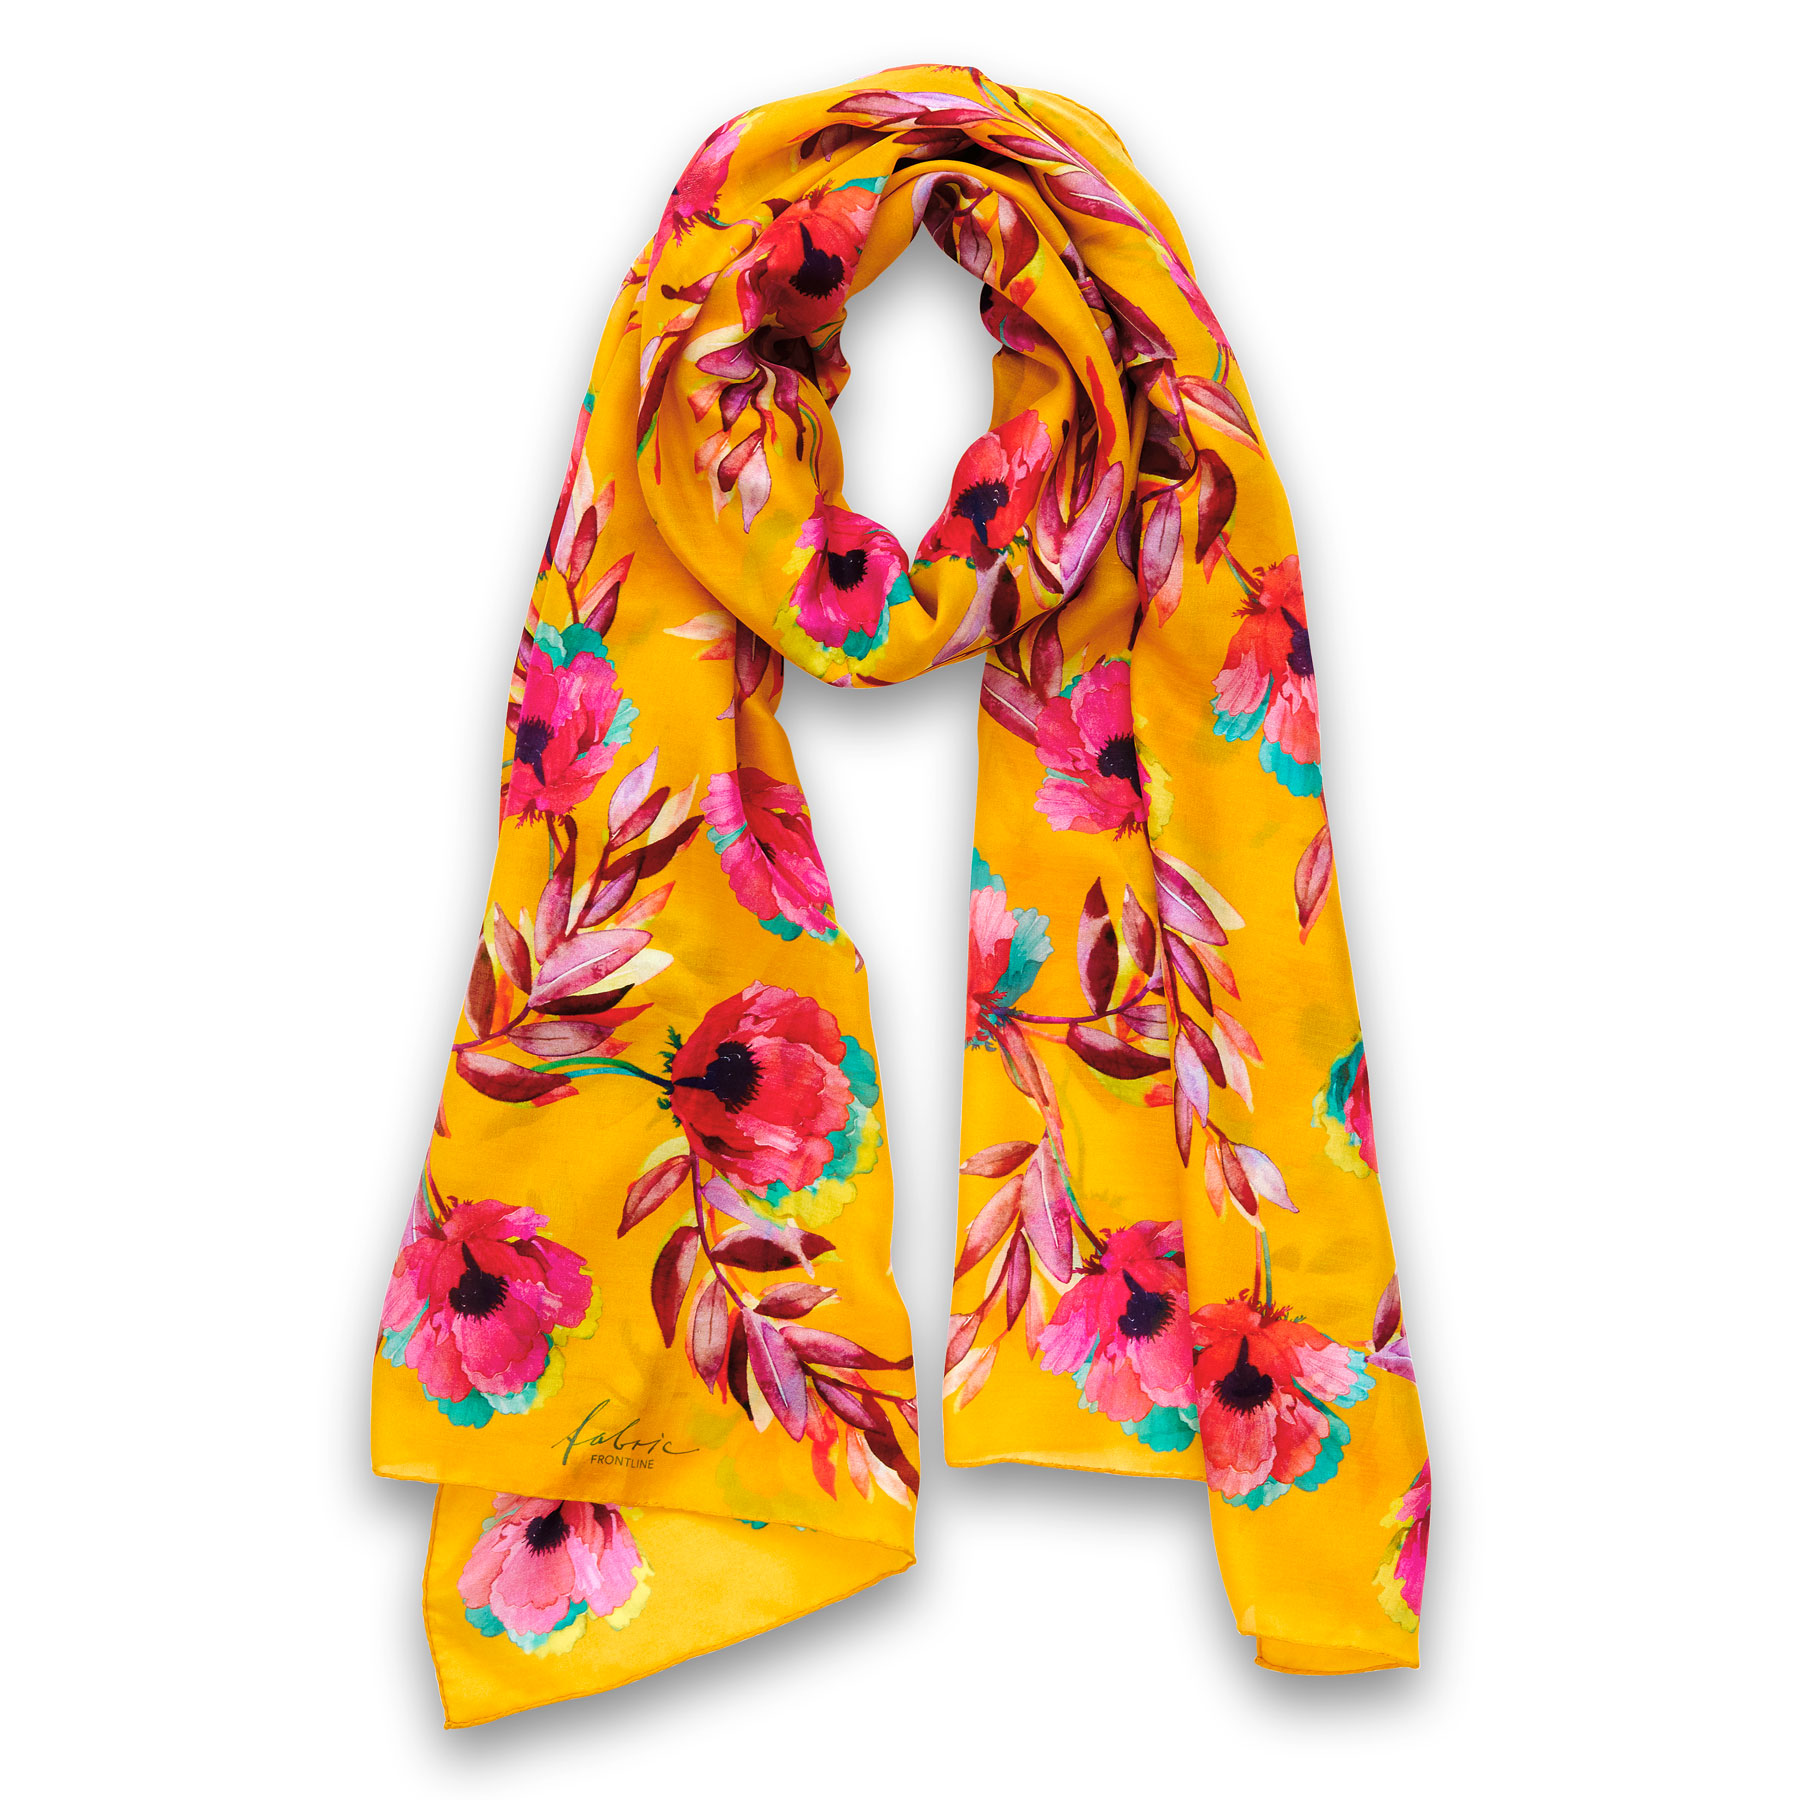 Poppy Scarf Senape 67% Cotton, 33% Silk